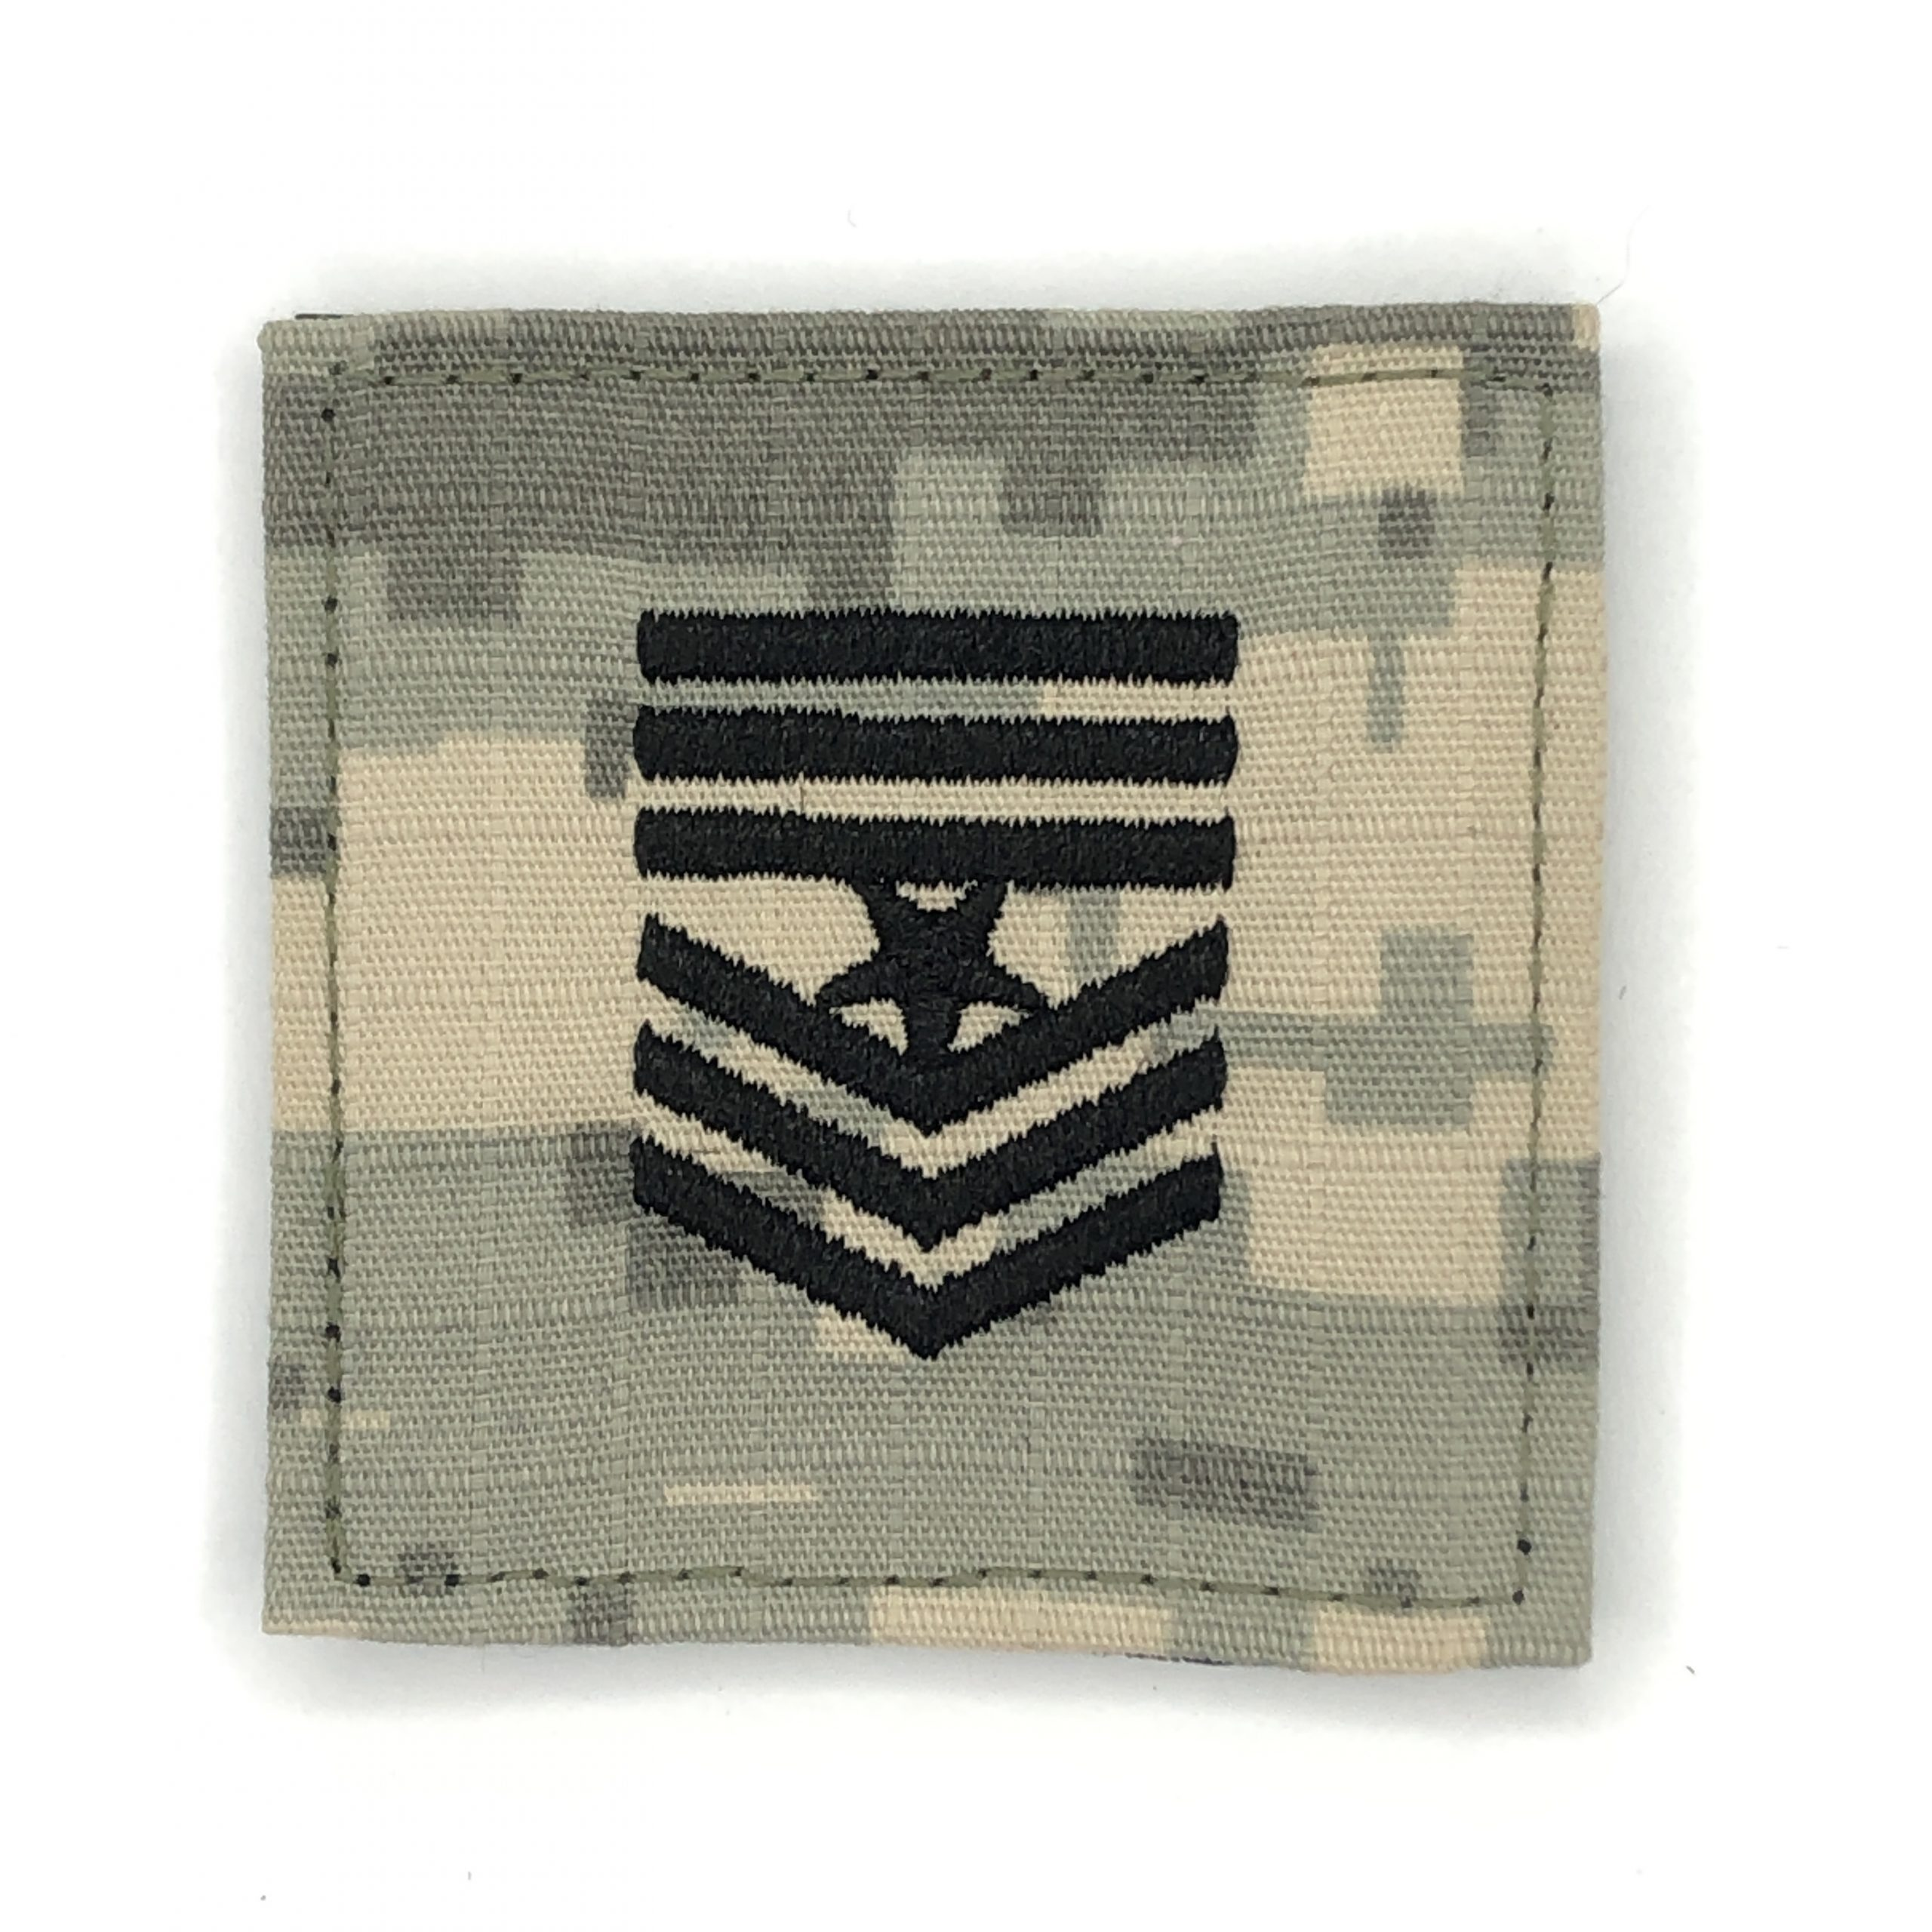 Customized Camouflage Military Rank Embroidered Patch For Army Accessory With Hook And Loop